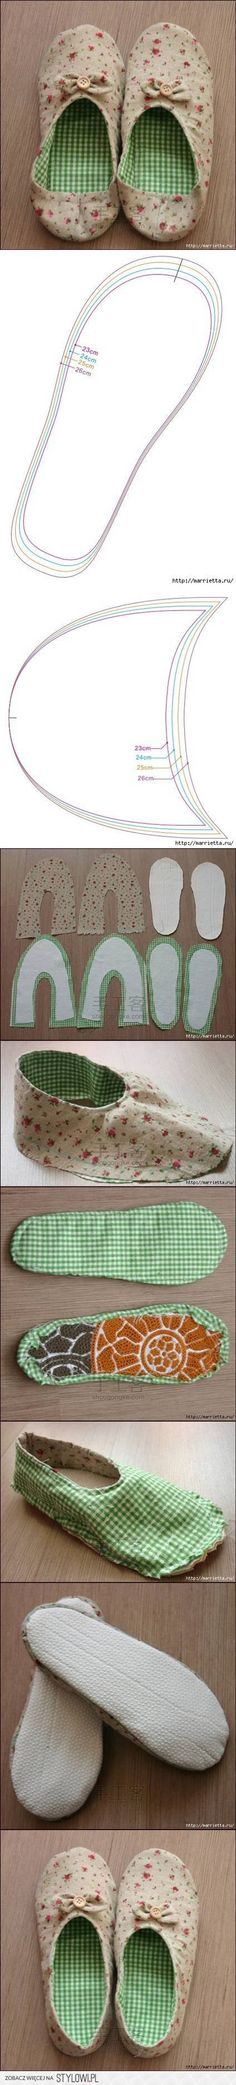 DIY Womens House Slippers DIY Projects | UsefulDIY.com na Stylowi.pl